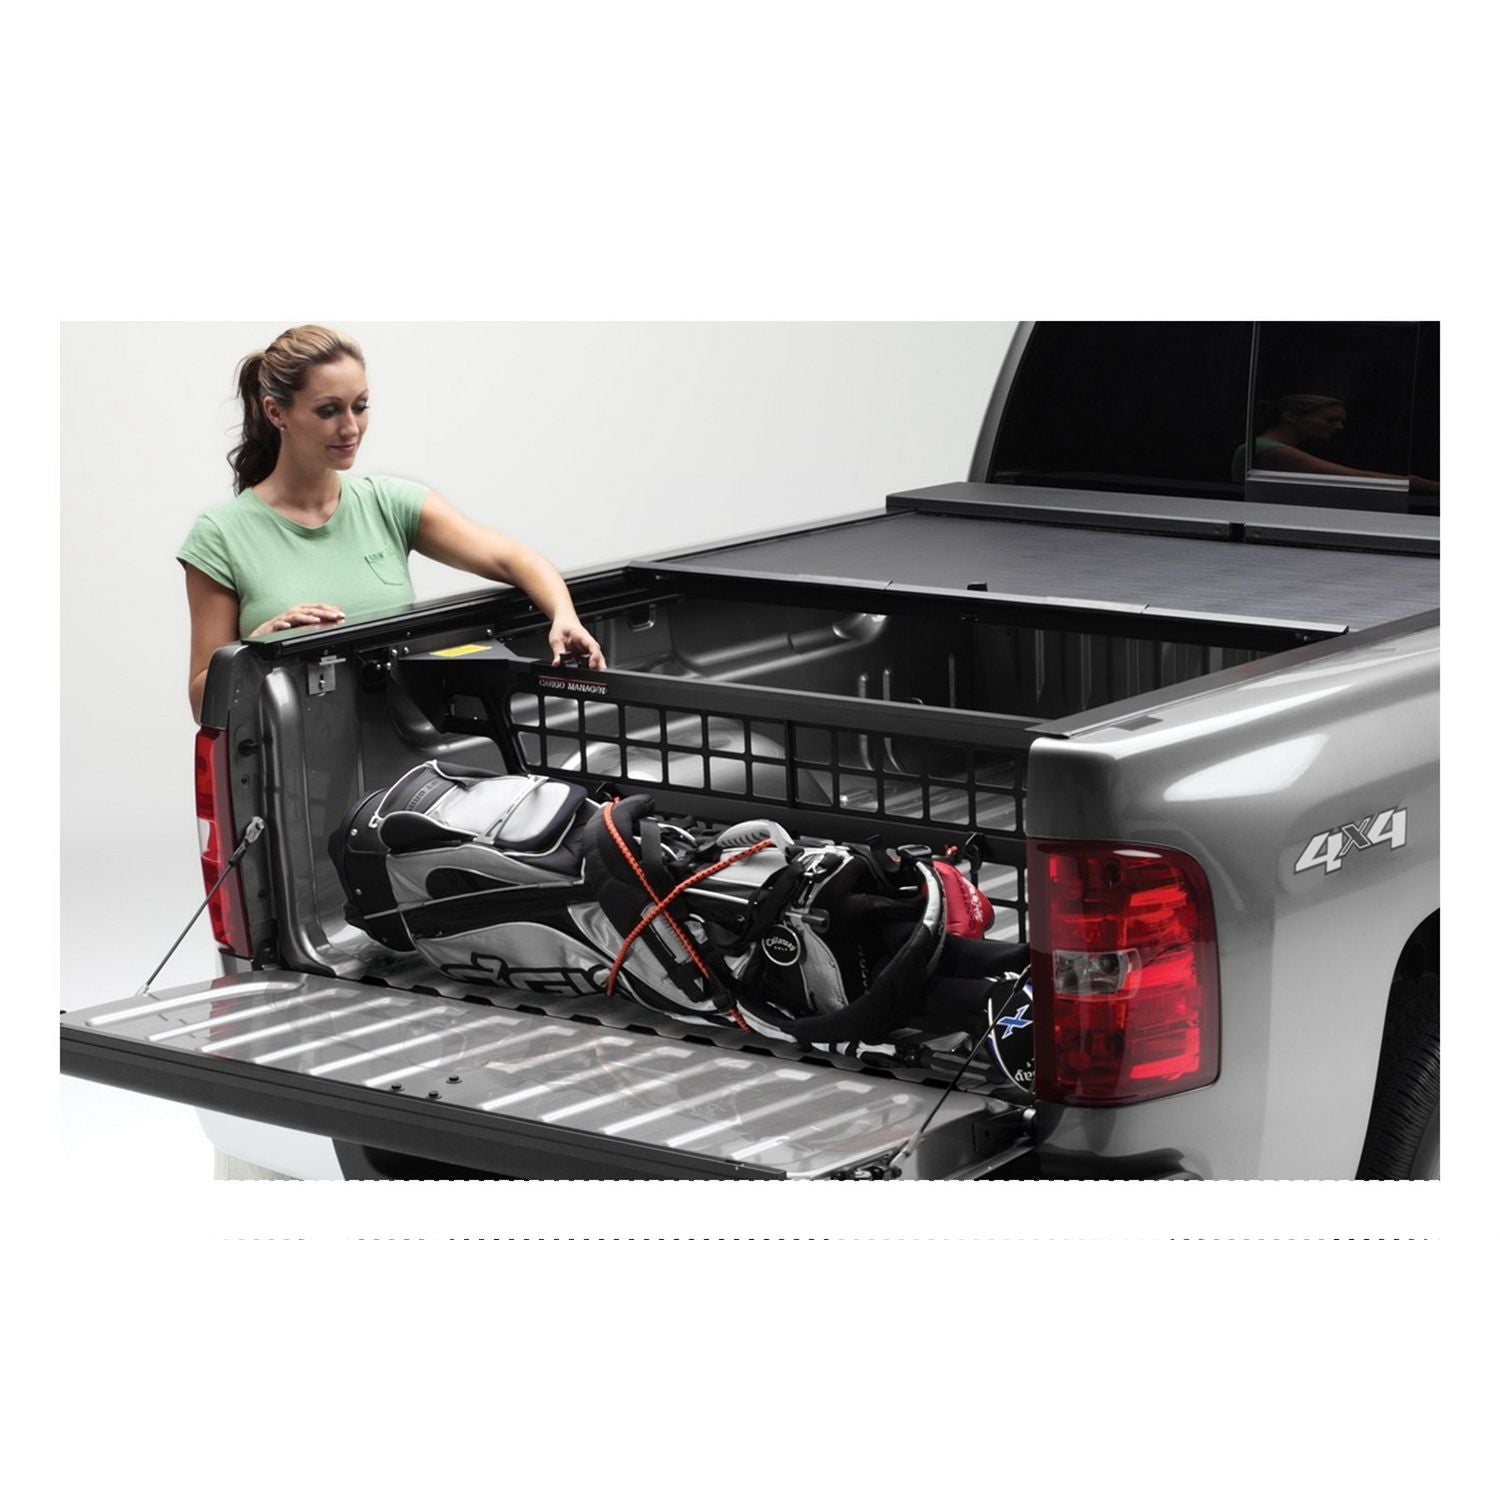 Roll-N-Lock CM122 Cargo Manager Rolling Truck Bed Divider Works Only with Roll-N-Lock Covers for 2019-2020 Ford Ranger | Fits 5.0 Ft. Bed